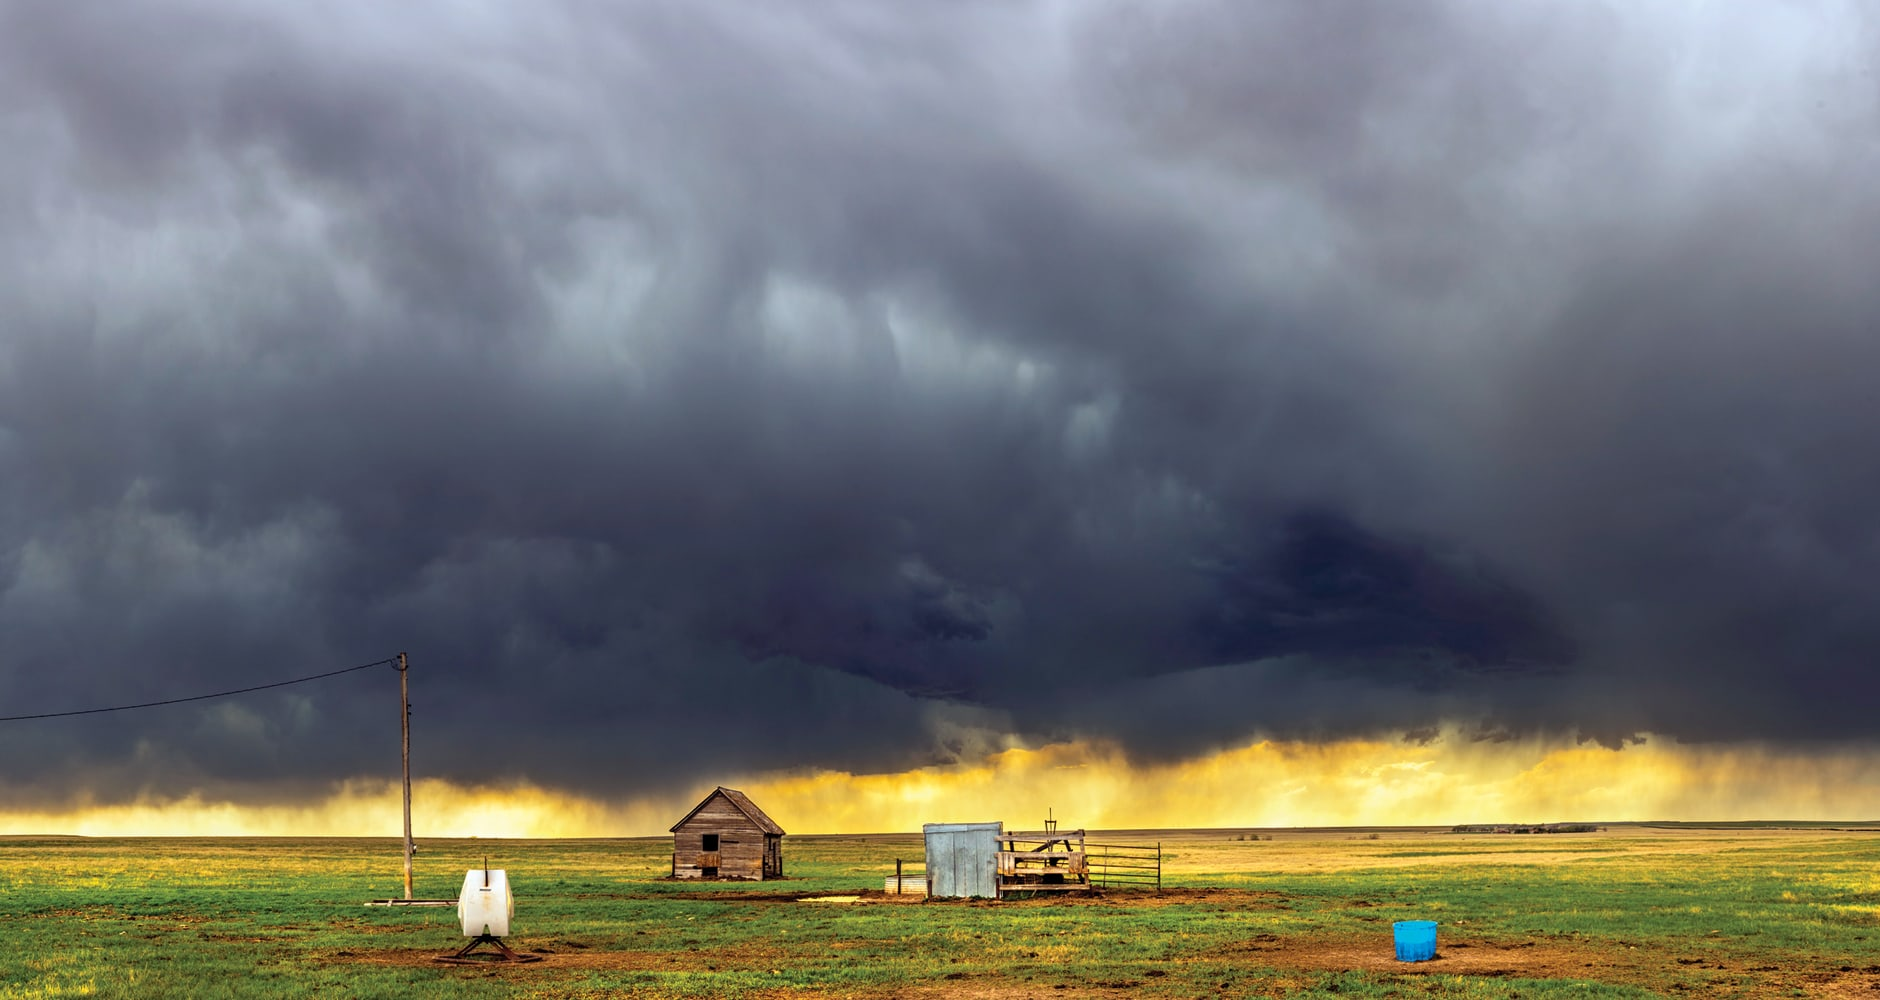 Scary Clouds That Look Like Tornadoes Farmers Almanac A wall cloud (murus or pedestal cloud) is a large, localized, persistent, and often abrupt lowering of cloud that develops beneath the surrounding base of a cumulonimbus cloud and from which. scary clouds that look like tornadoes